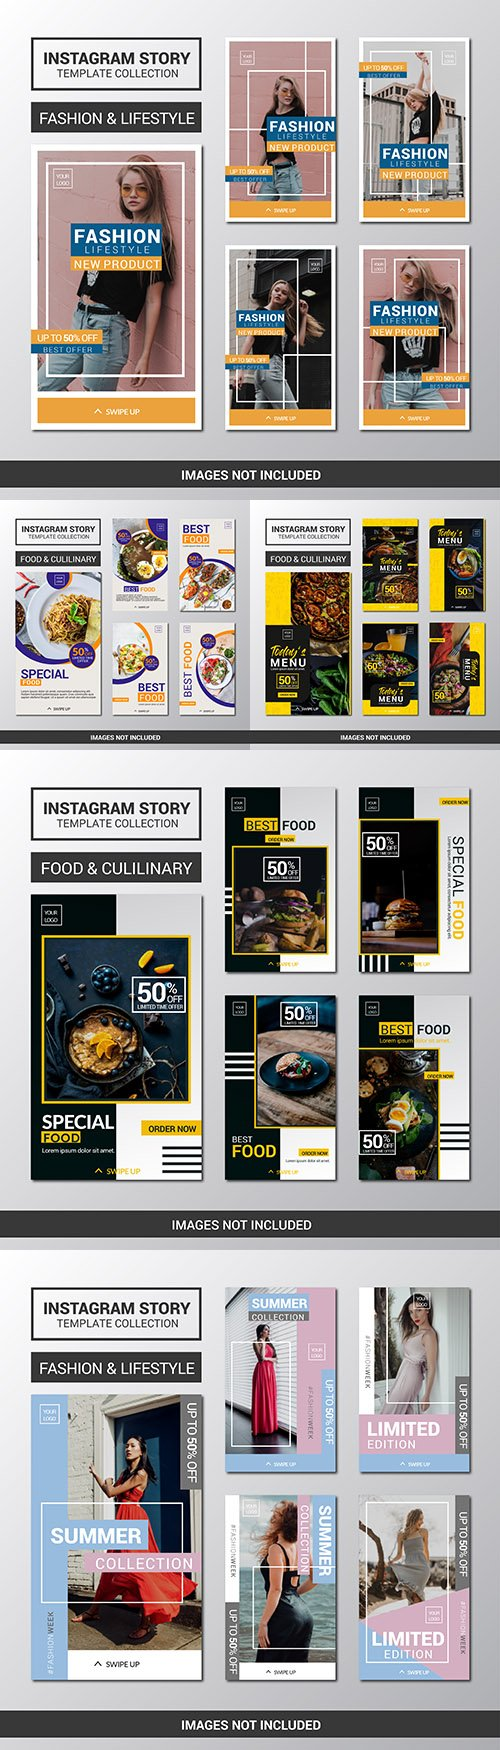 Instagram story collection design templates